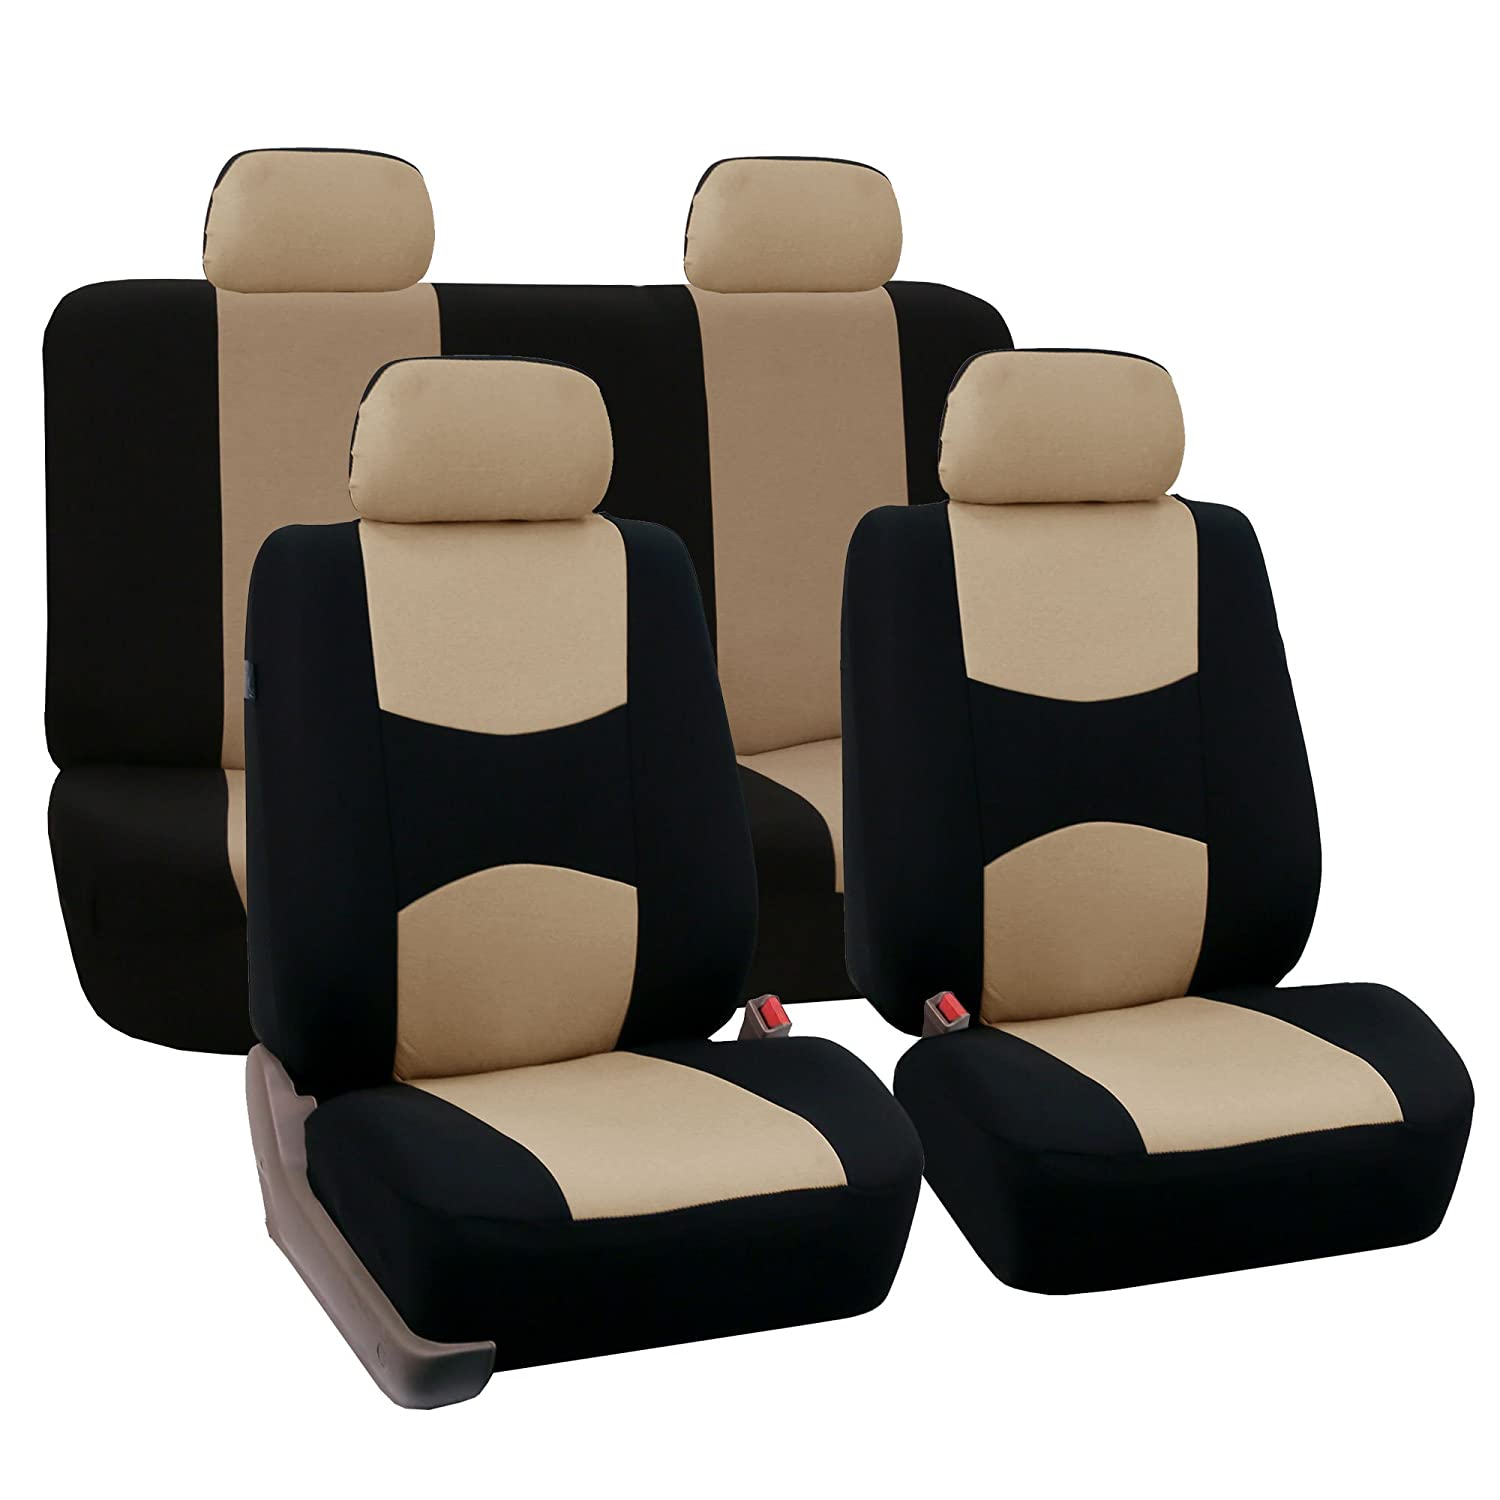 FH GROUP FH-FB050114 Flat Cloth Car Seat Covers Beige Color